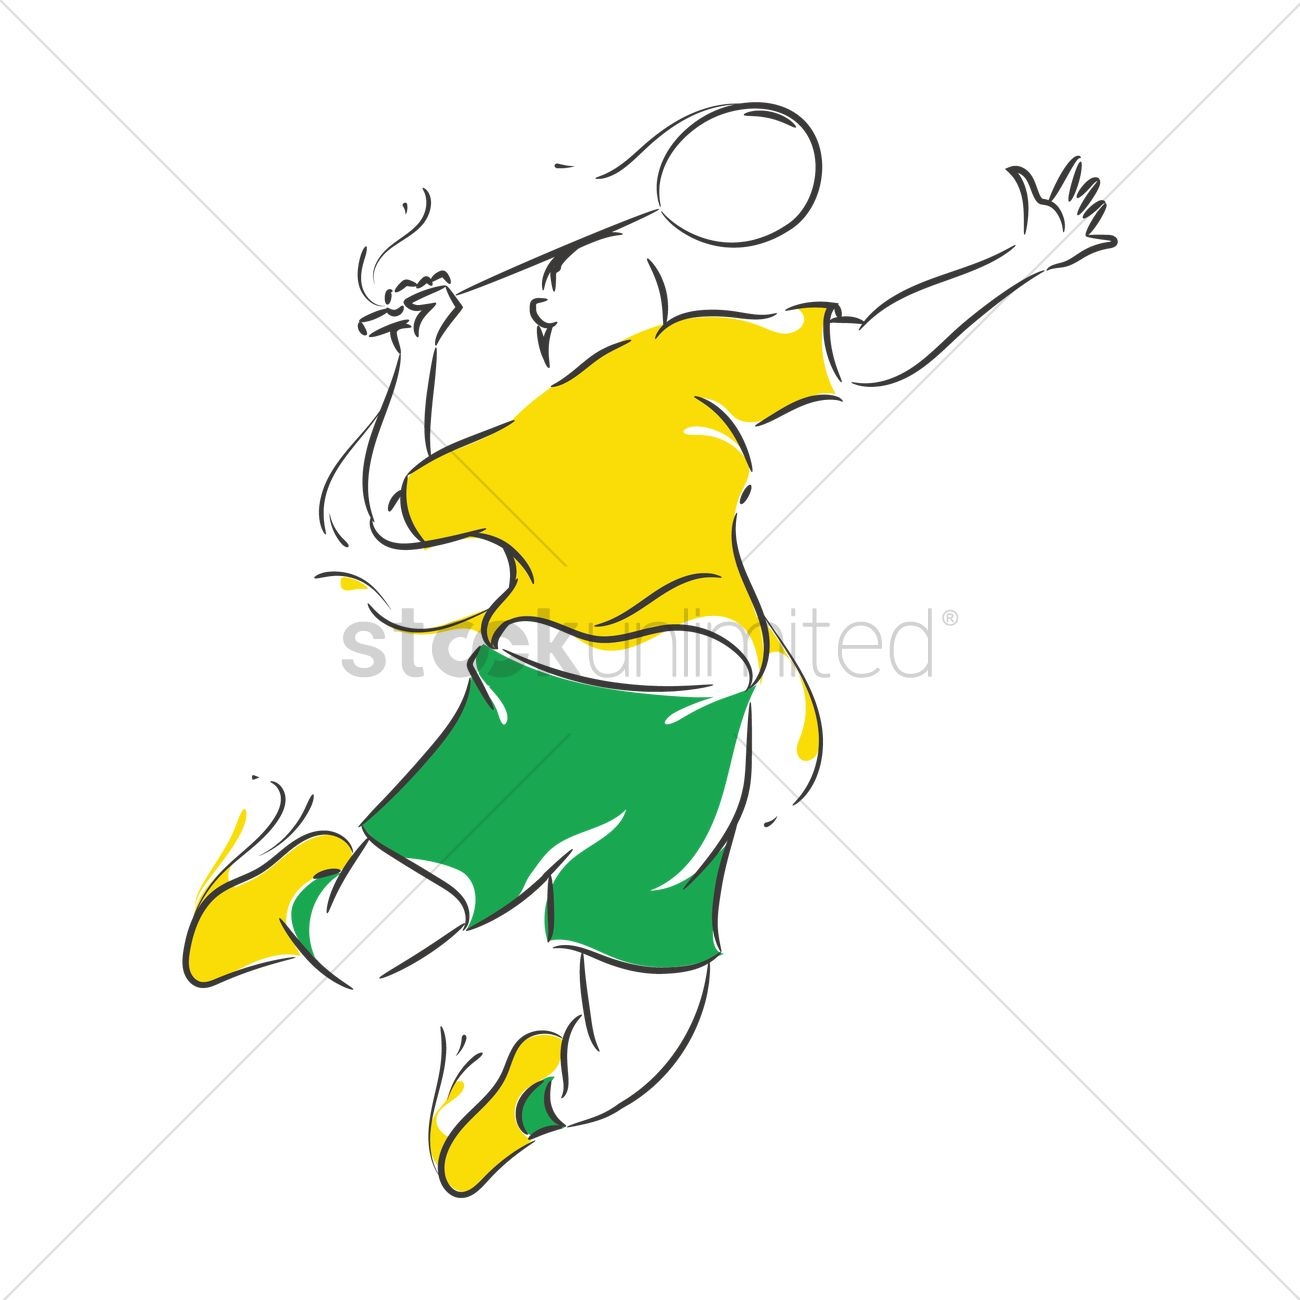 Smashed football player clipart freeuse Badminton smash clipart 6 » Clipart Station freeuse